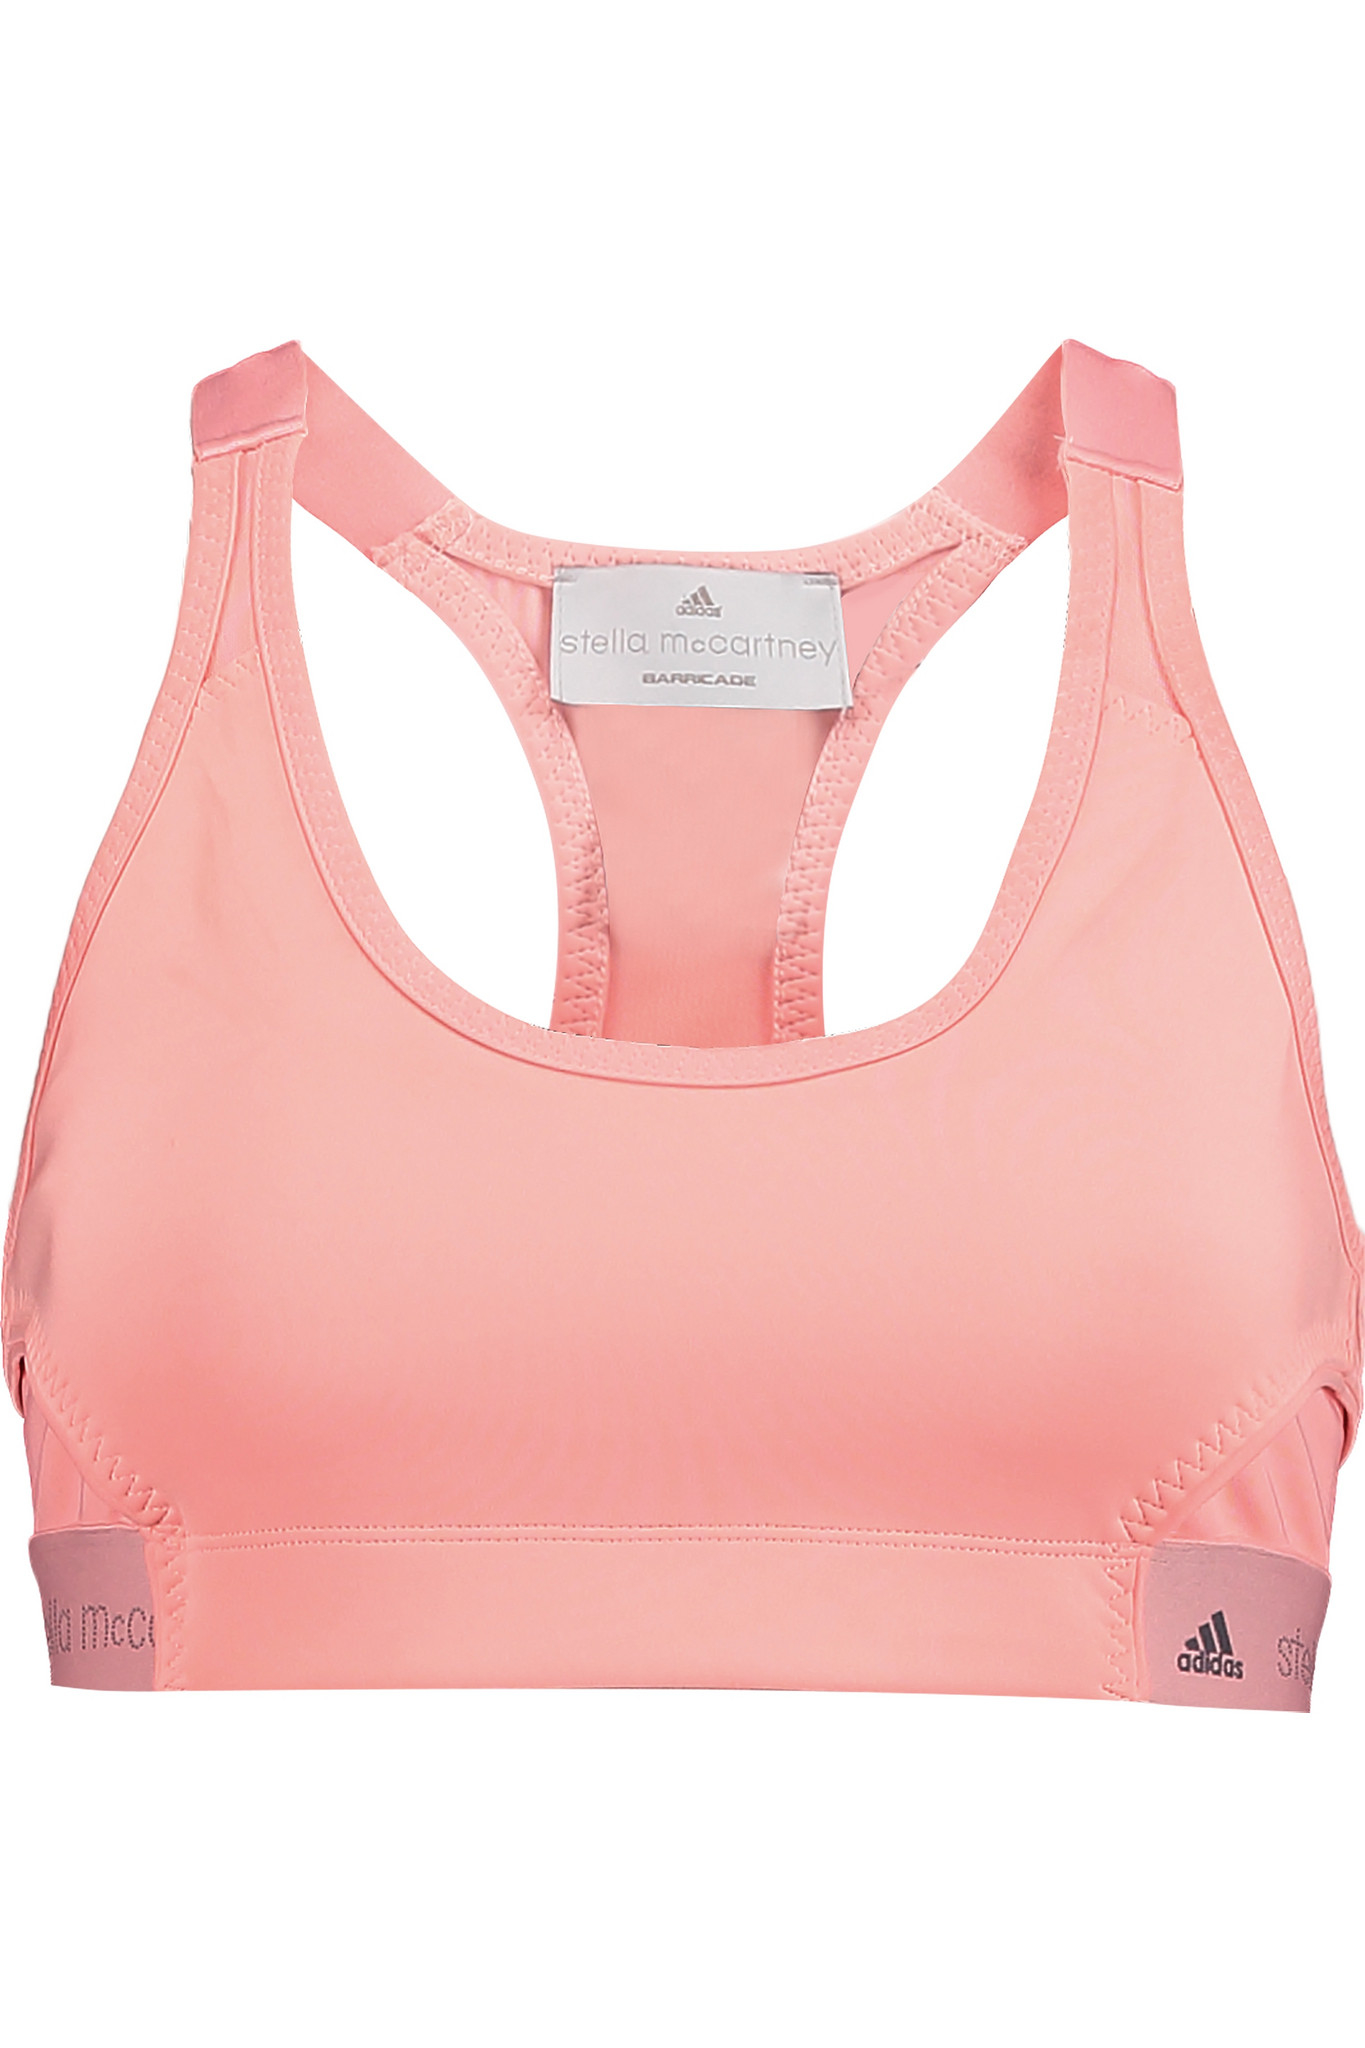 641713412f52e adidas By Stella McCartney The Pull On Stretch-jersey Sports Bra in ...